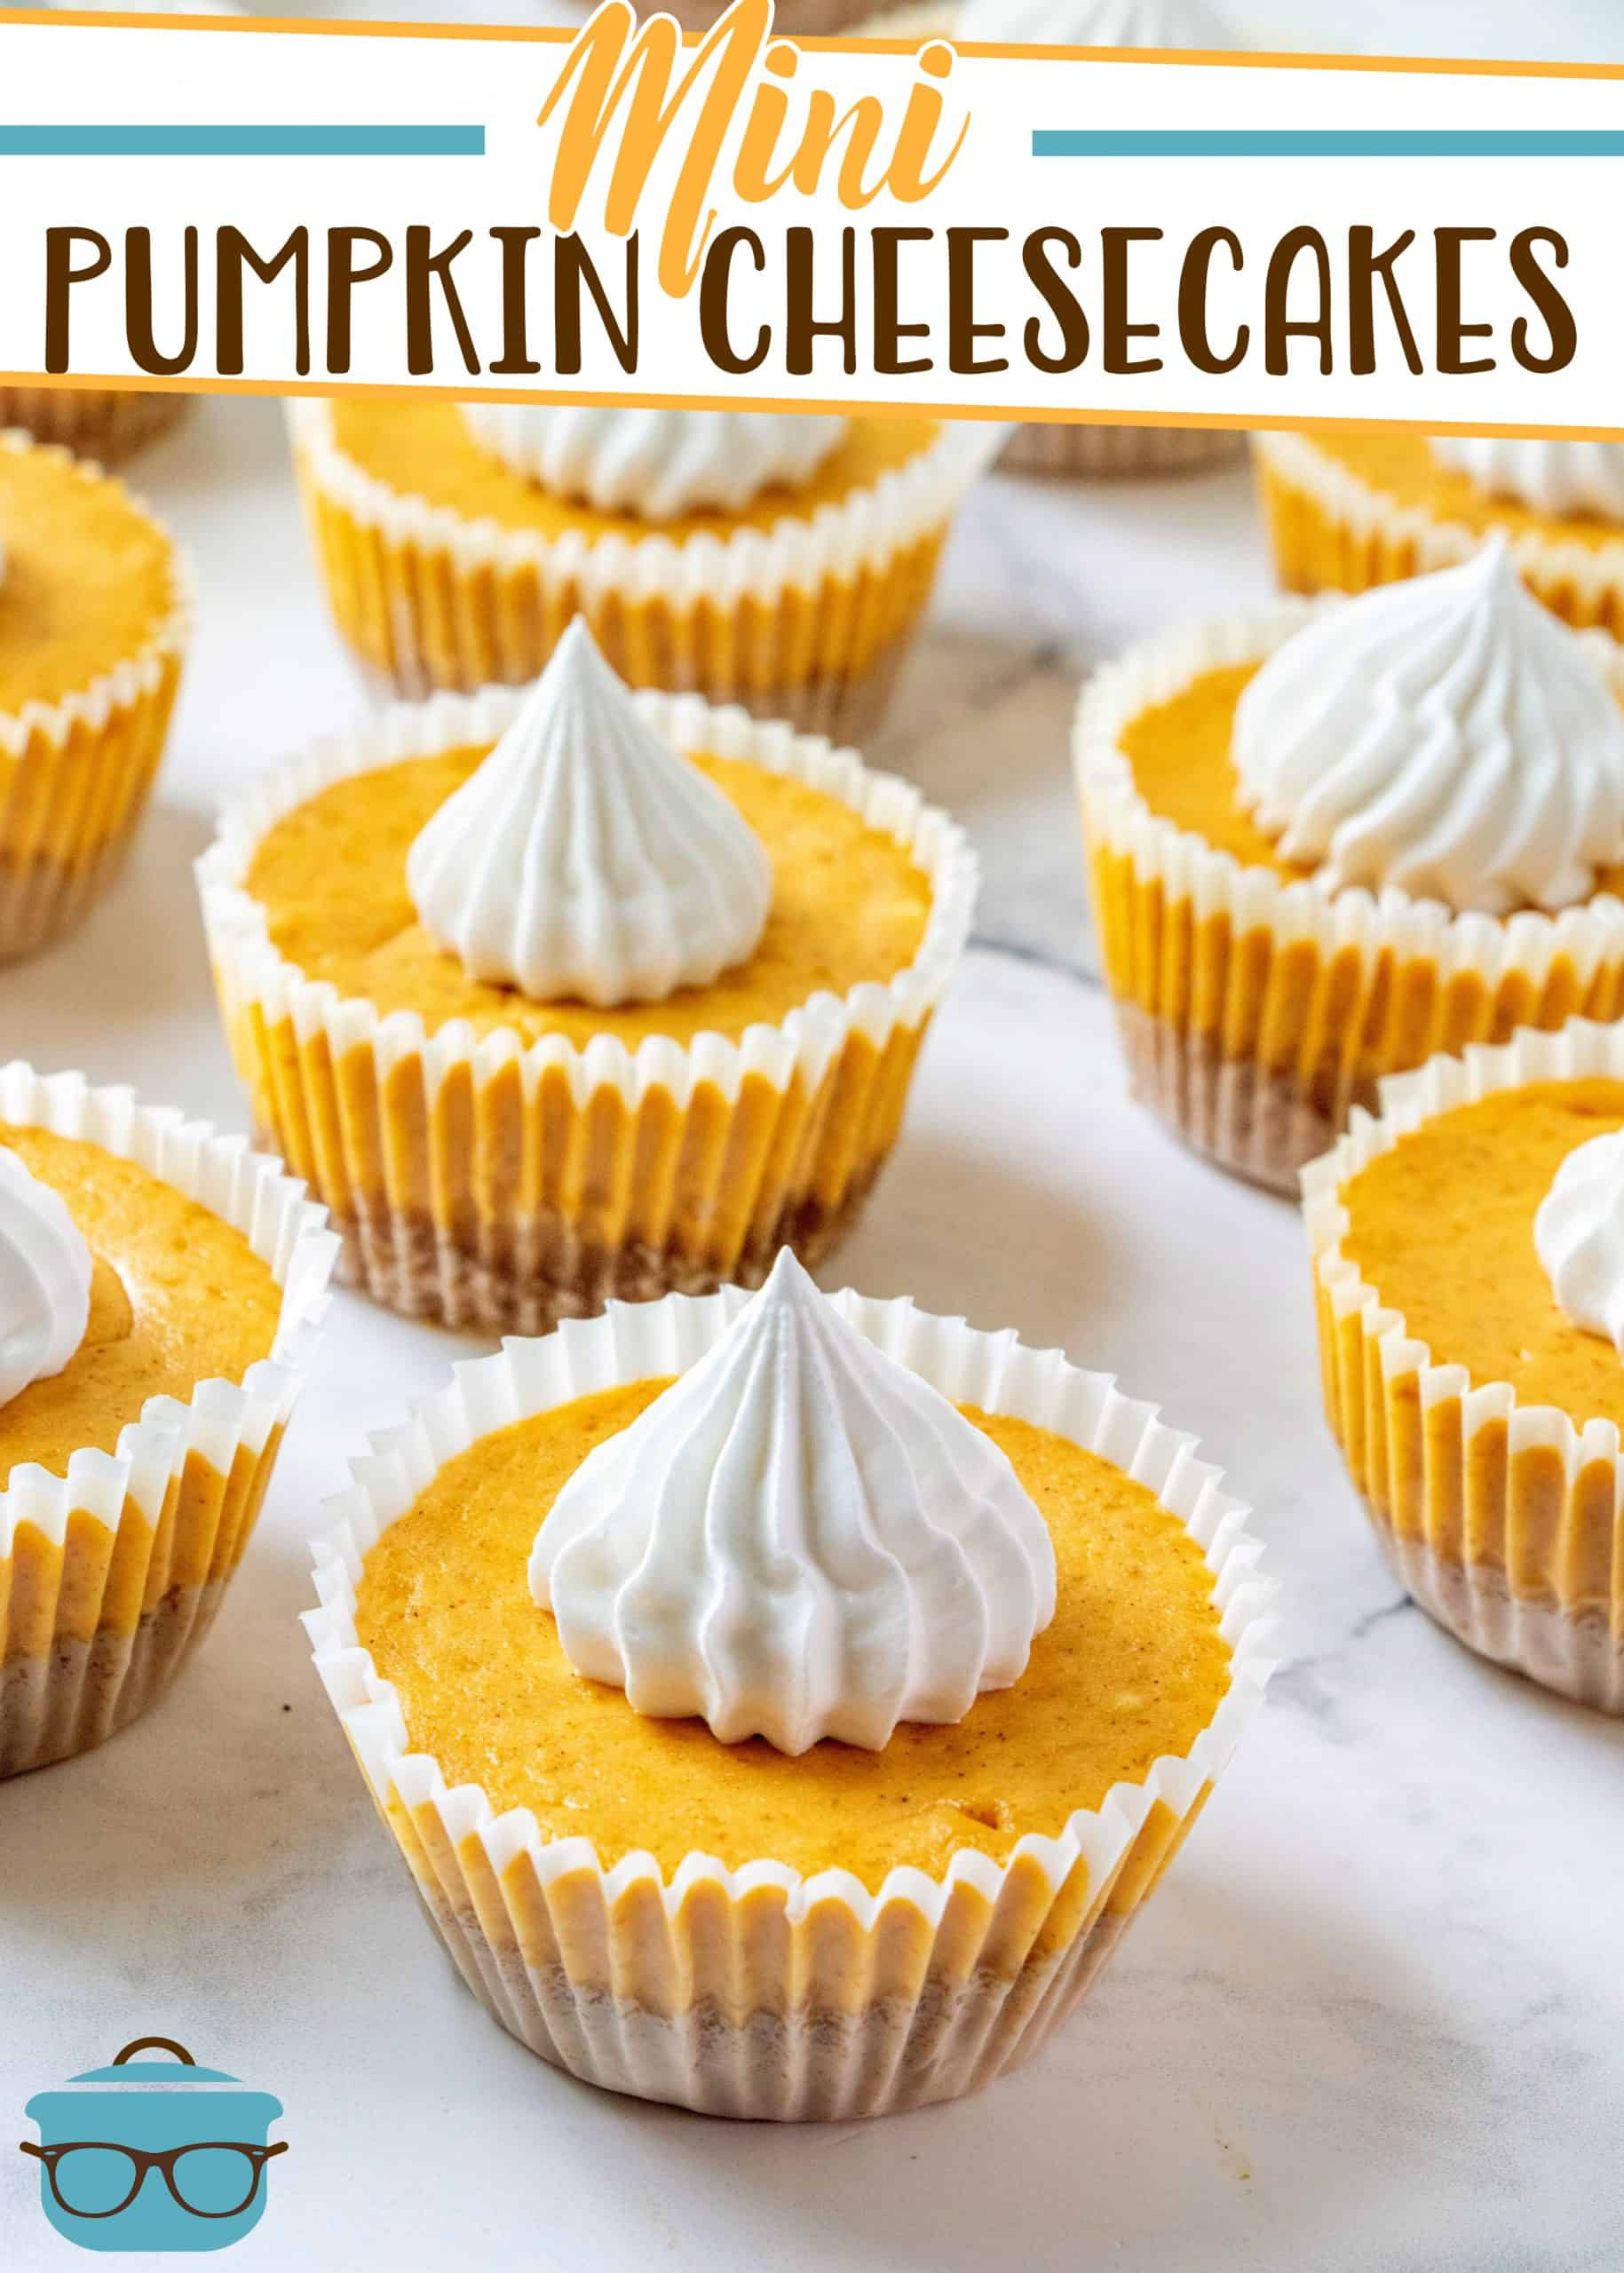 These Easy Mini Pumpkin Cheesecakes are delicious little individual bites of pumpkin-spiced cheesecakes with a graham cracker crust!